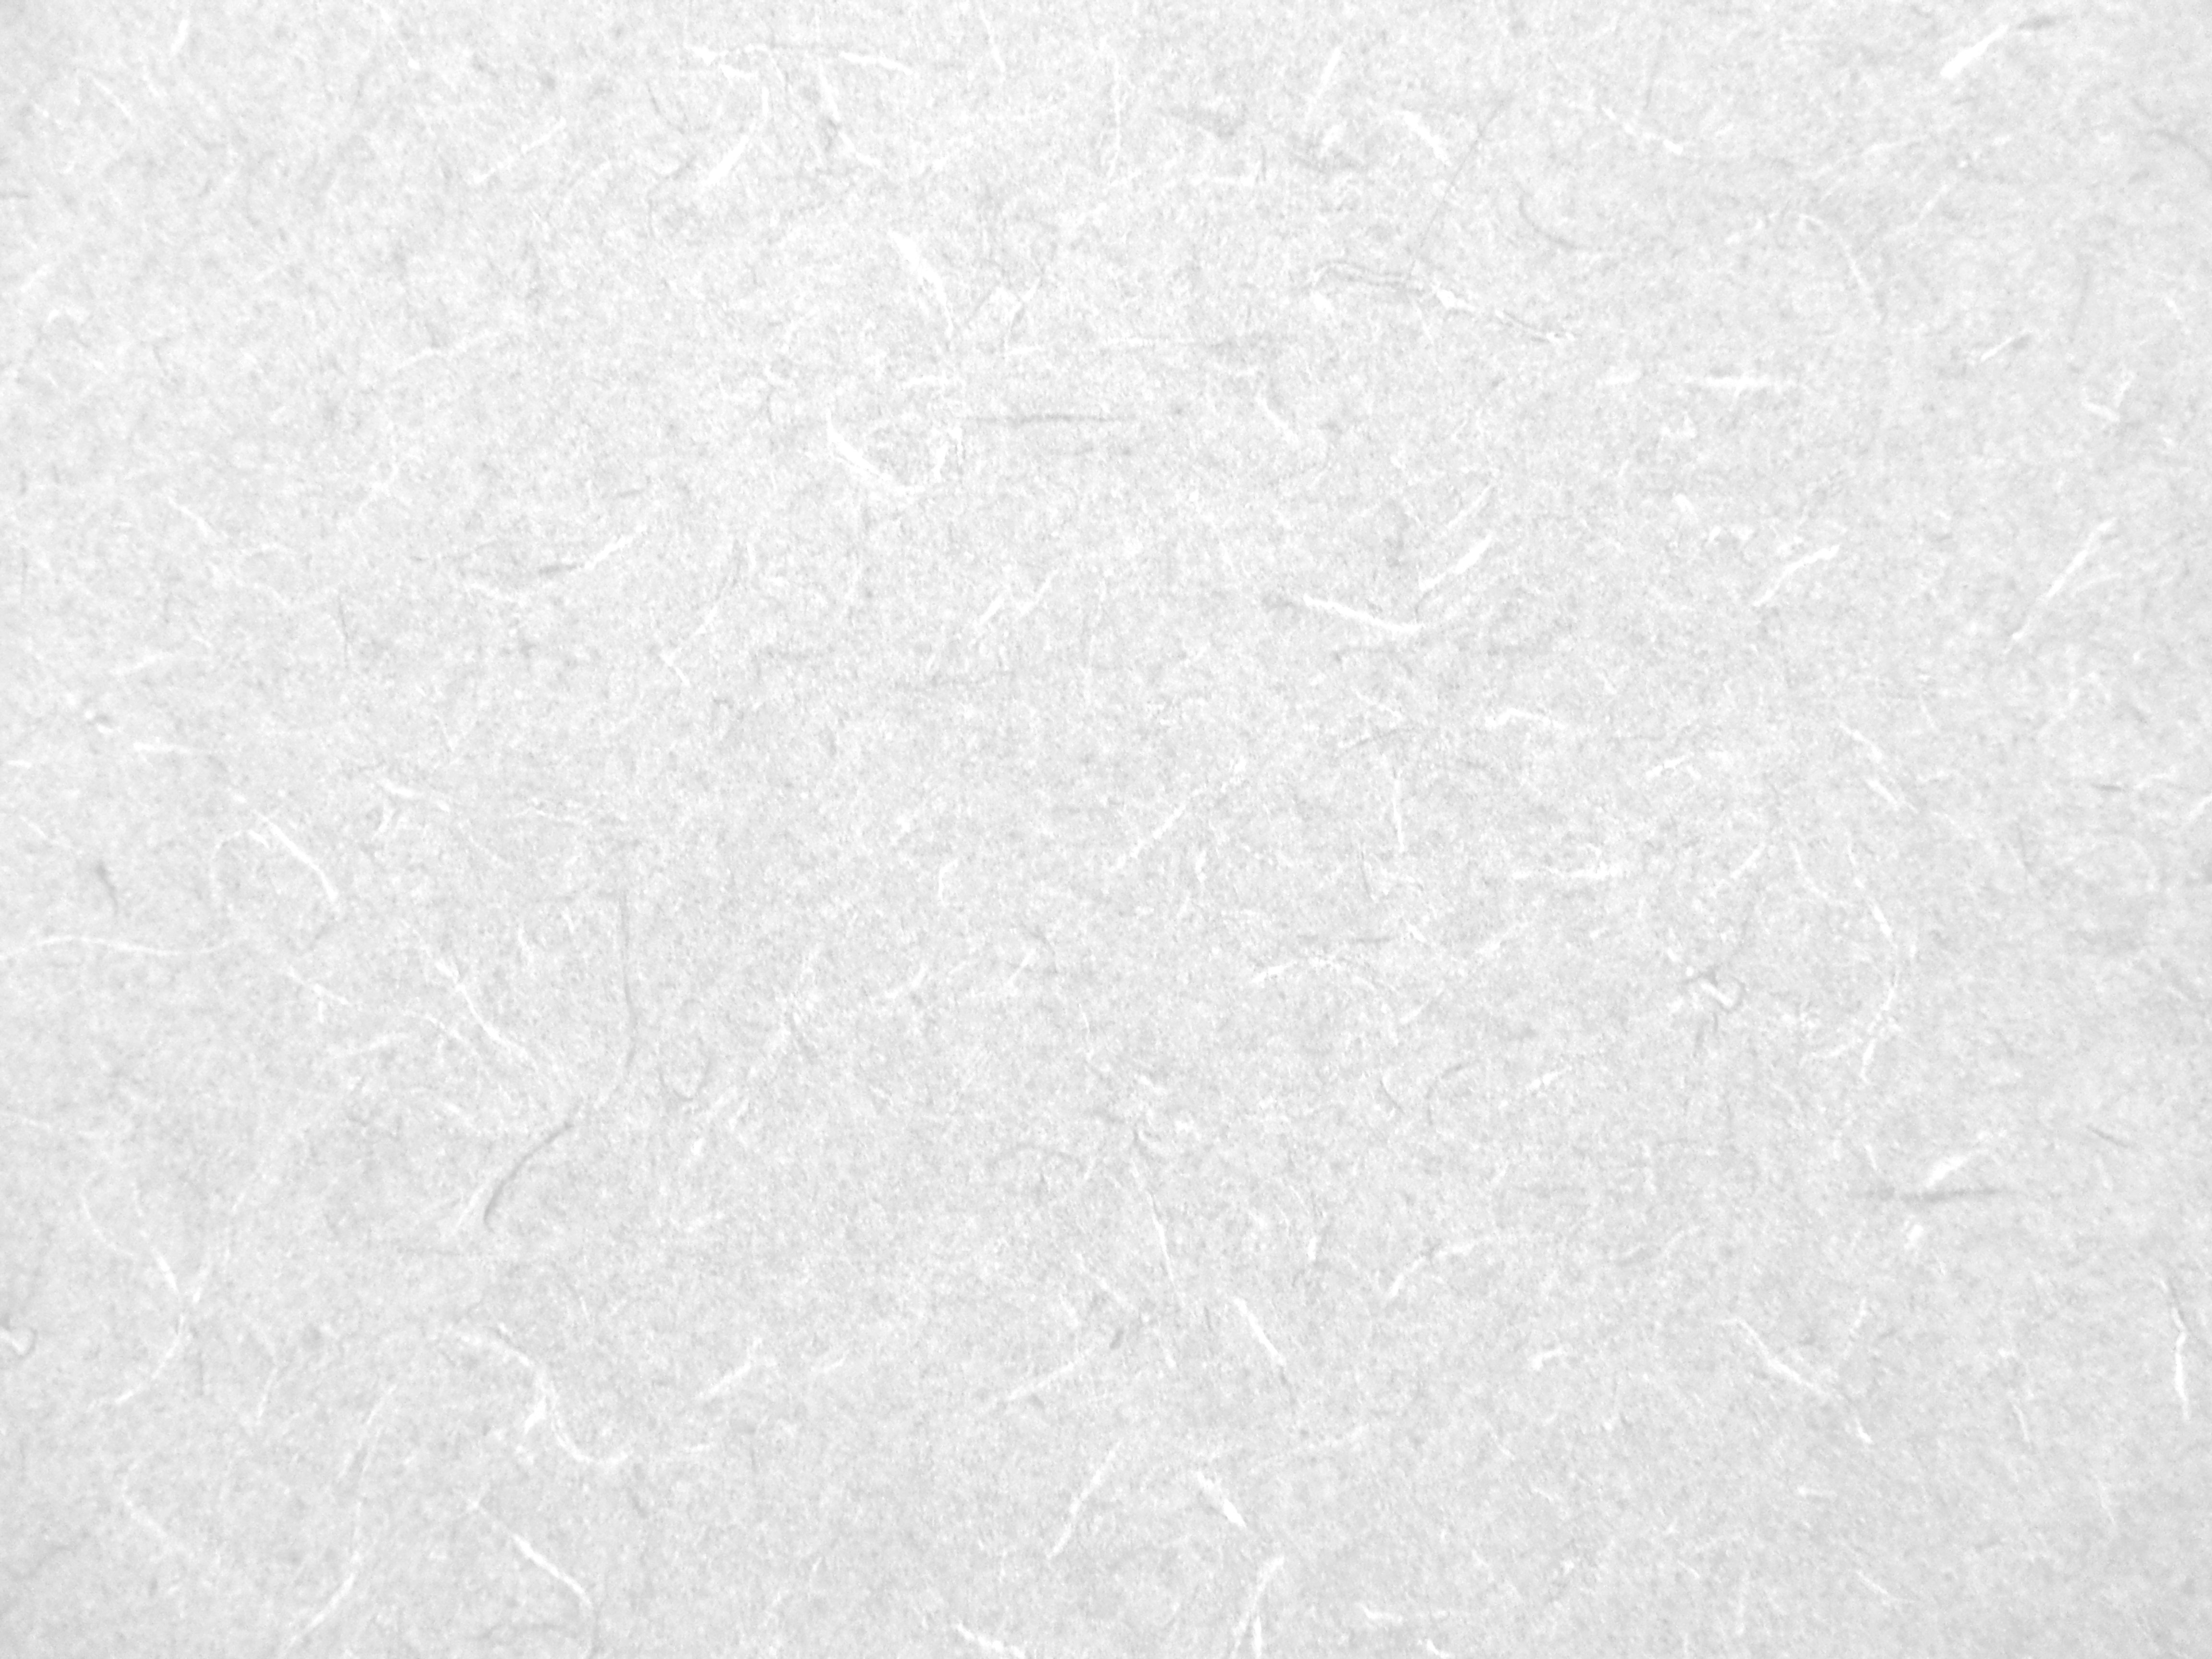 White Wallpaper Pattern